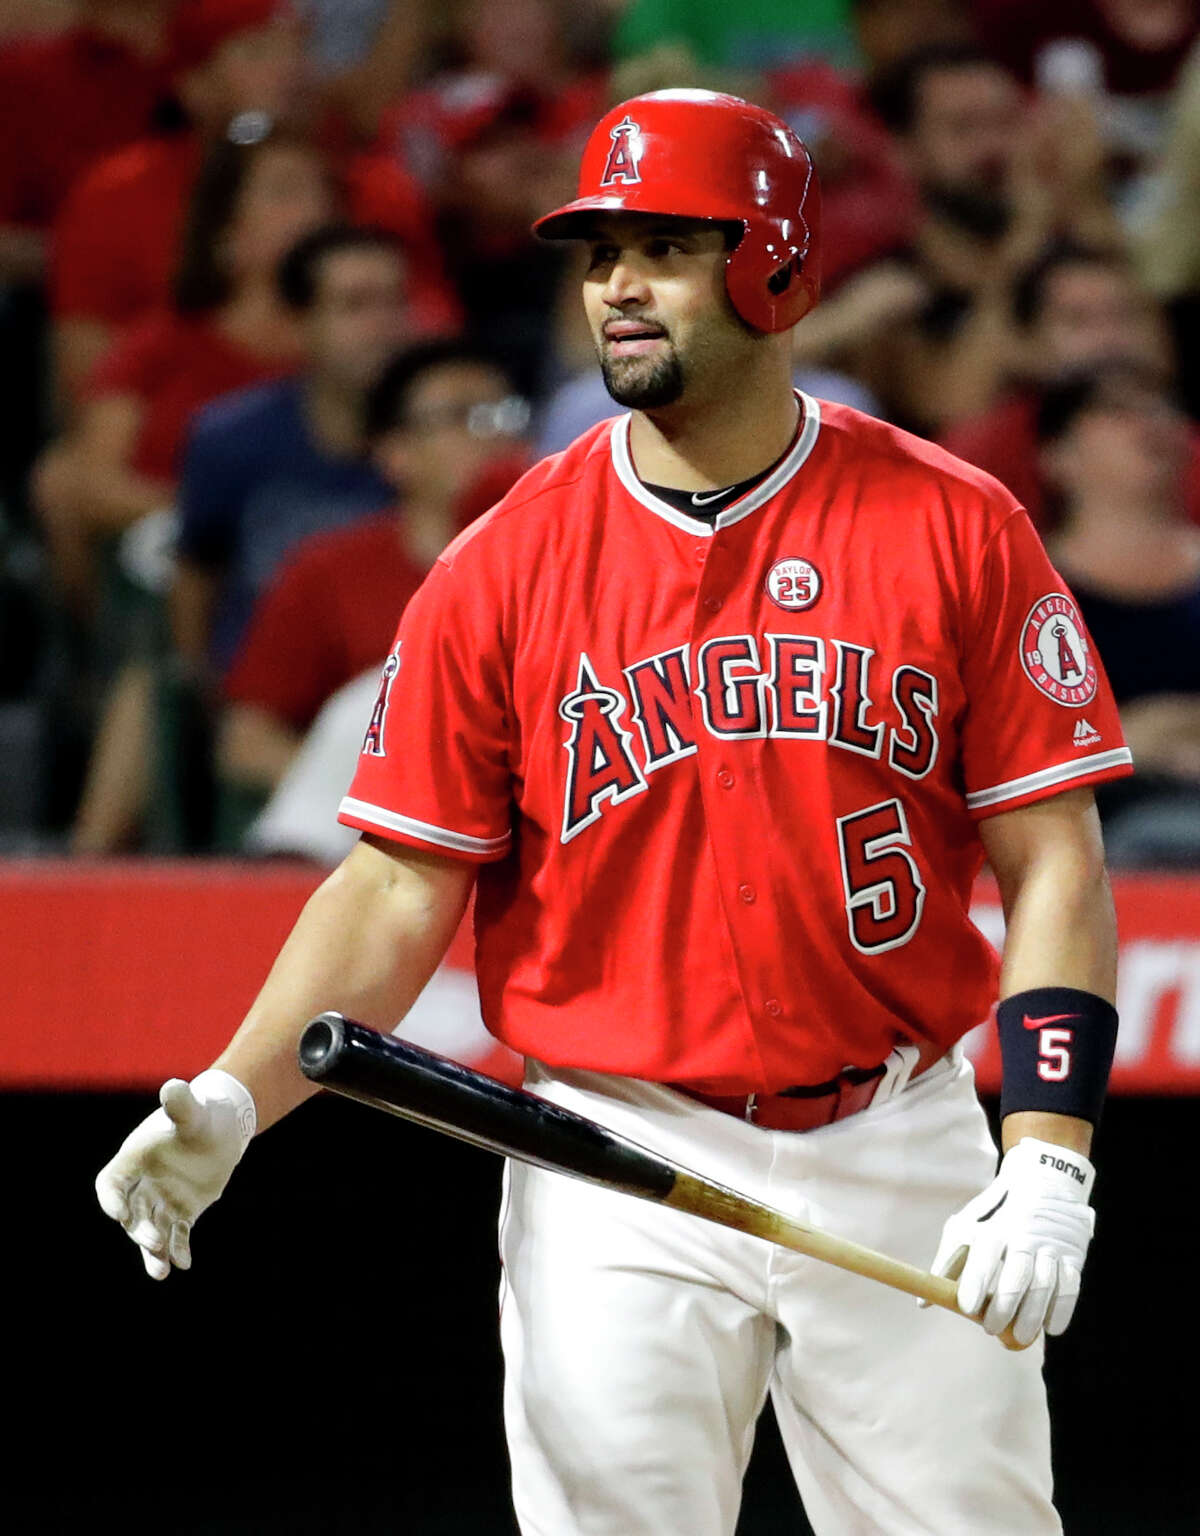 Los Angeles Angels' Albert Pujols reacts after flying out against the Houston Astros during the seventh inning of a baseball game in Anaheim, Calif., Tuesday, Sept. 12, 2017. (AP Photo/Chris Carlson)